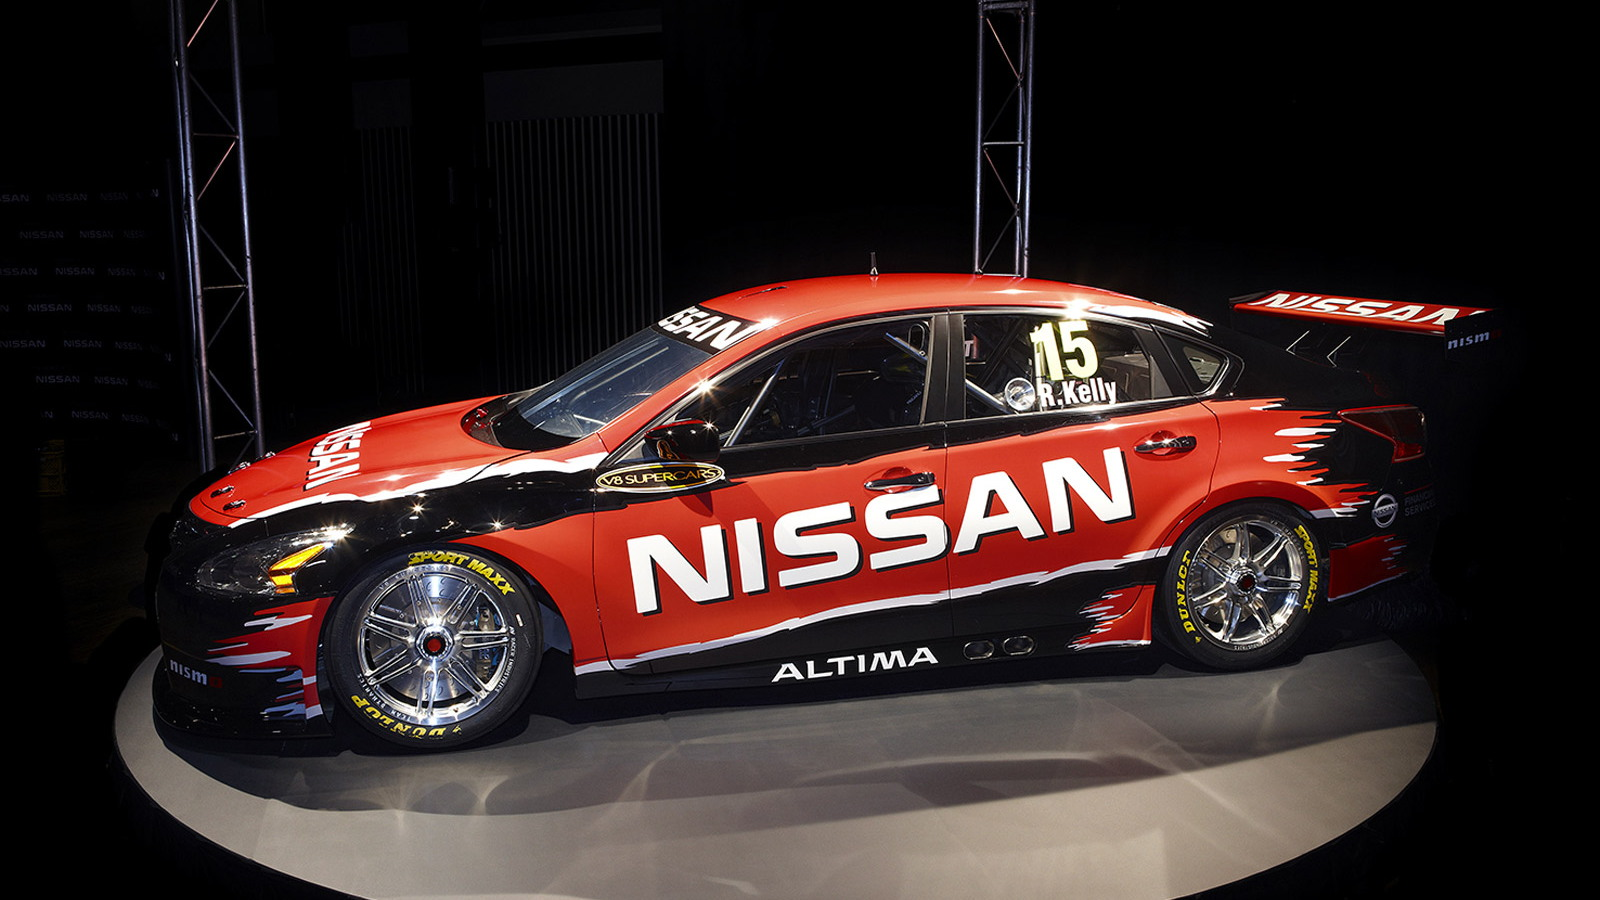 Nissan Altima race car that will compete in the 2013 V8 Supercars season